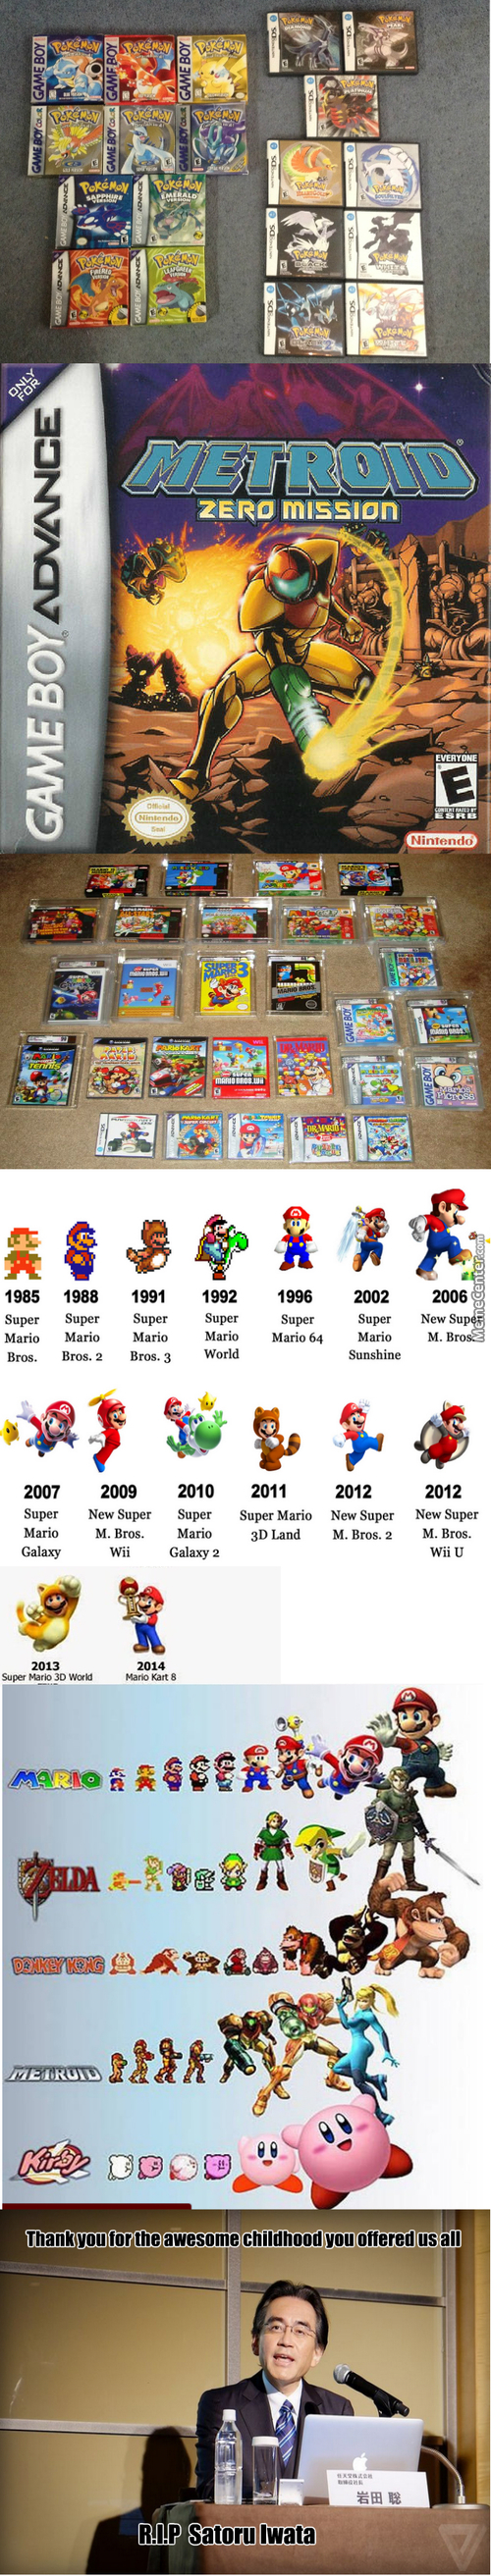 The Evolution Of Nintendo In Memory Of Satoru Iwata (2002-2015)